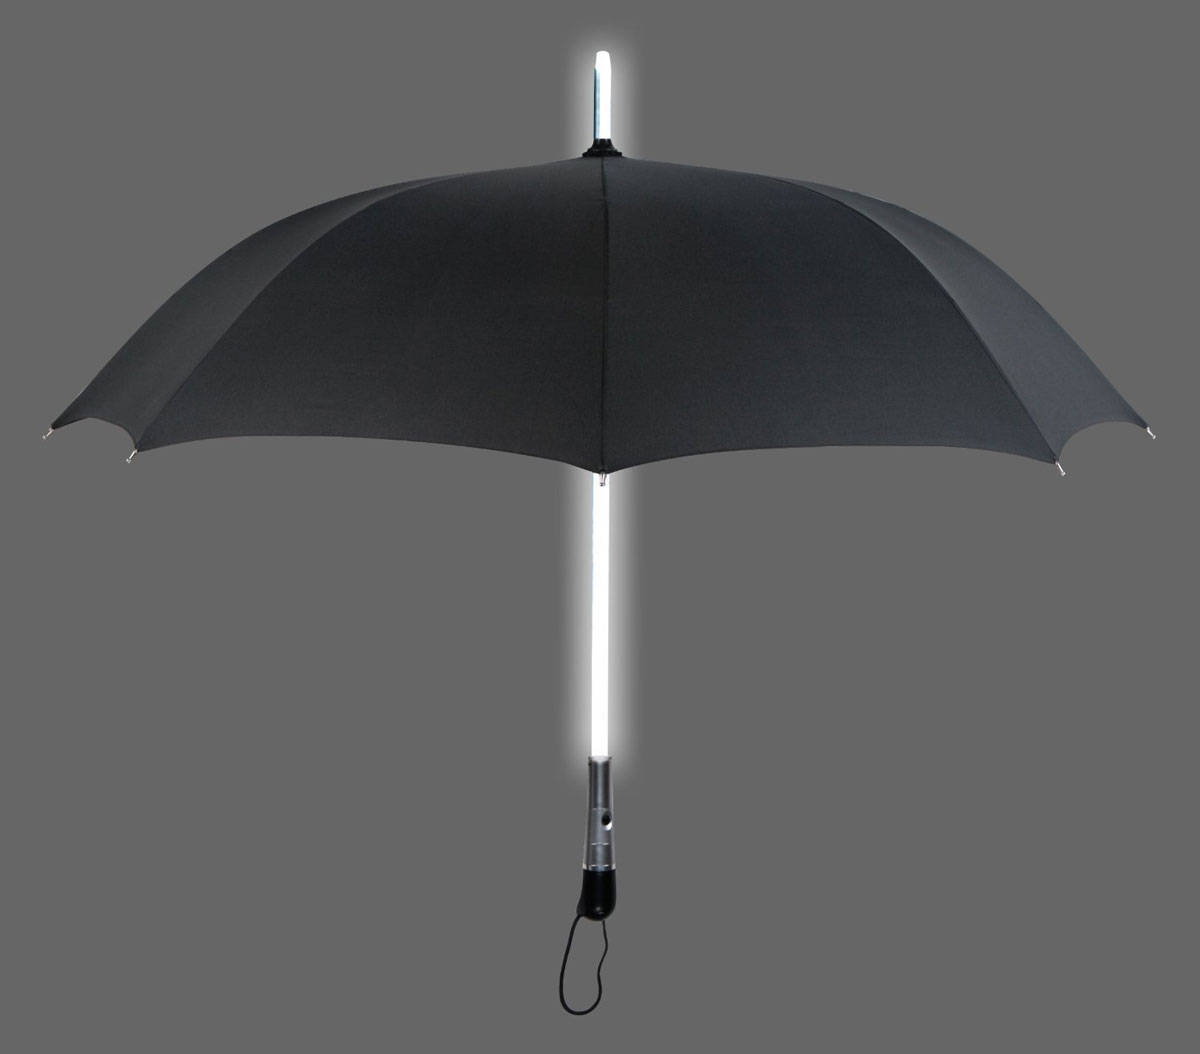 Blue Led Umbrella: LED Lightsaber Flashlight Umbrella